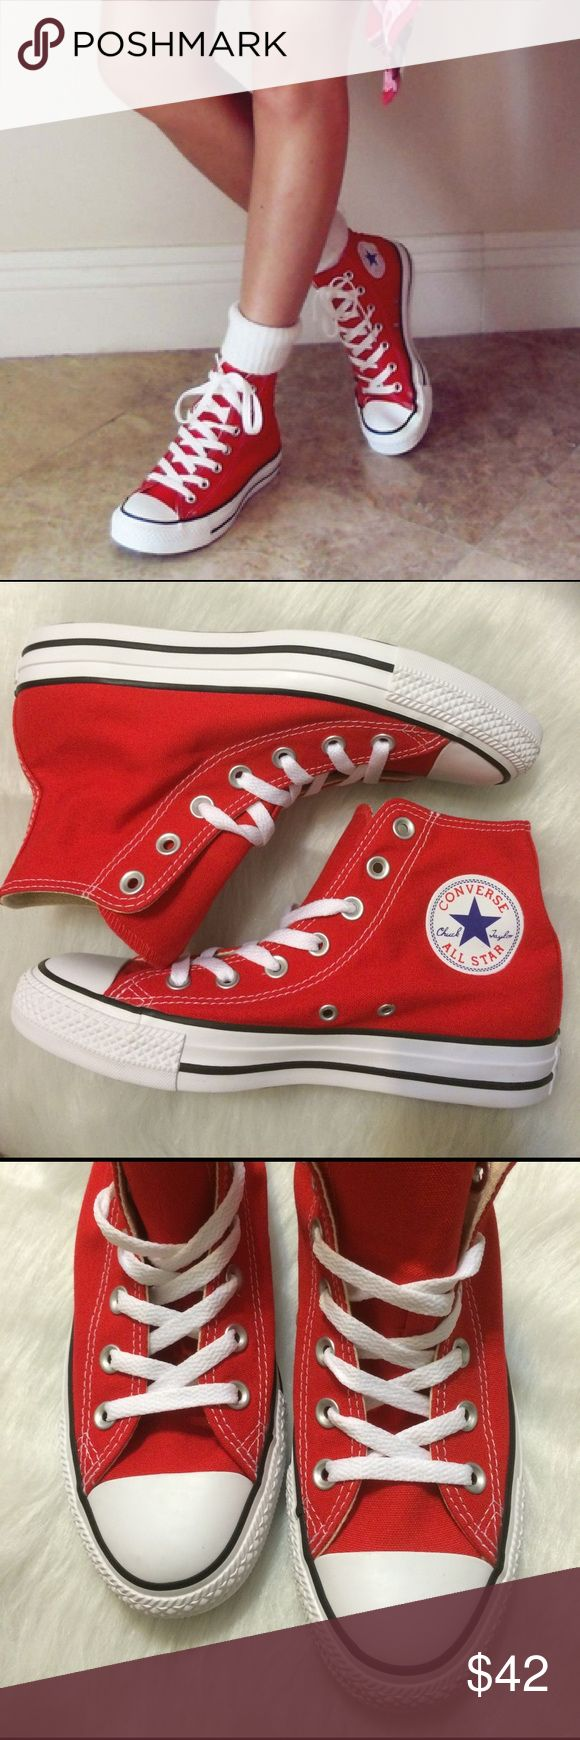 📍1 HOUR SALE📍CONVERSE WOMENS RED CHUCK TAYLORS Brand new without box. Price is firm Converse Shoes Sneakers